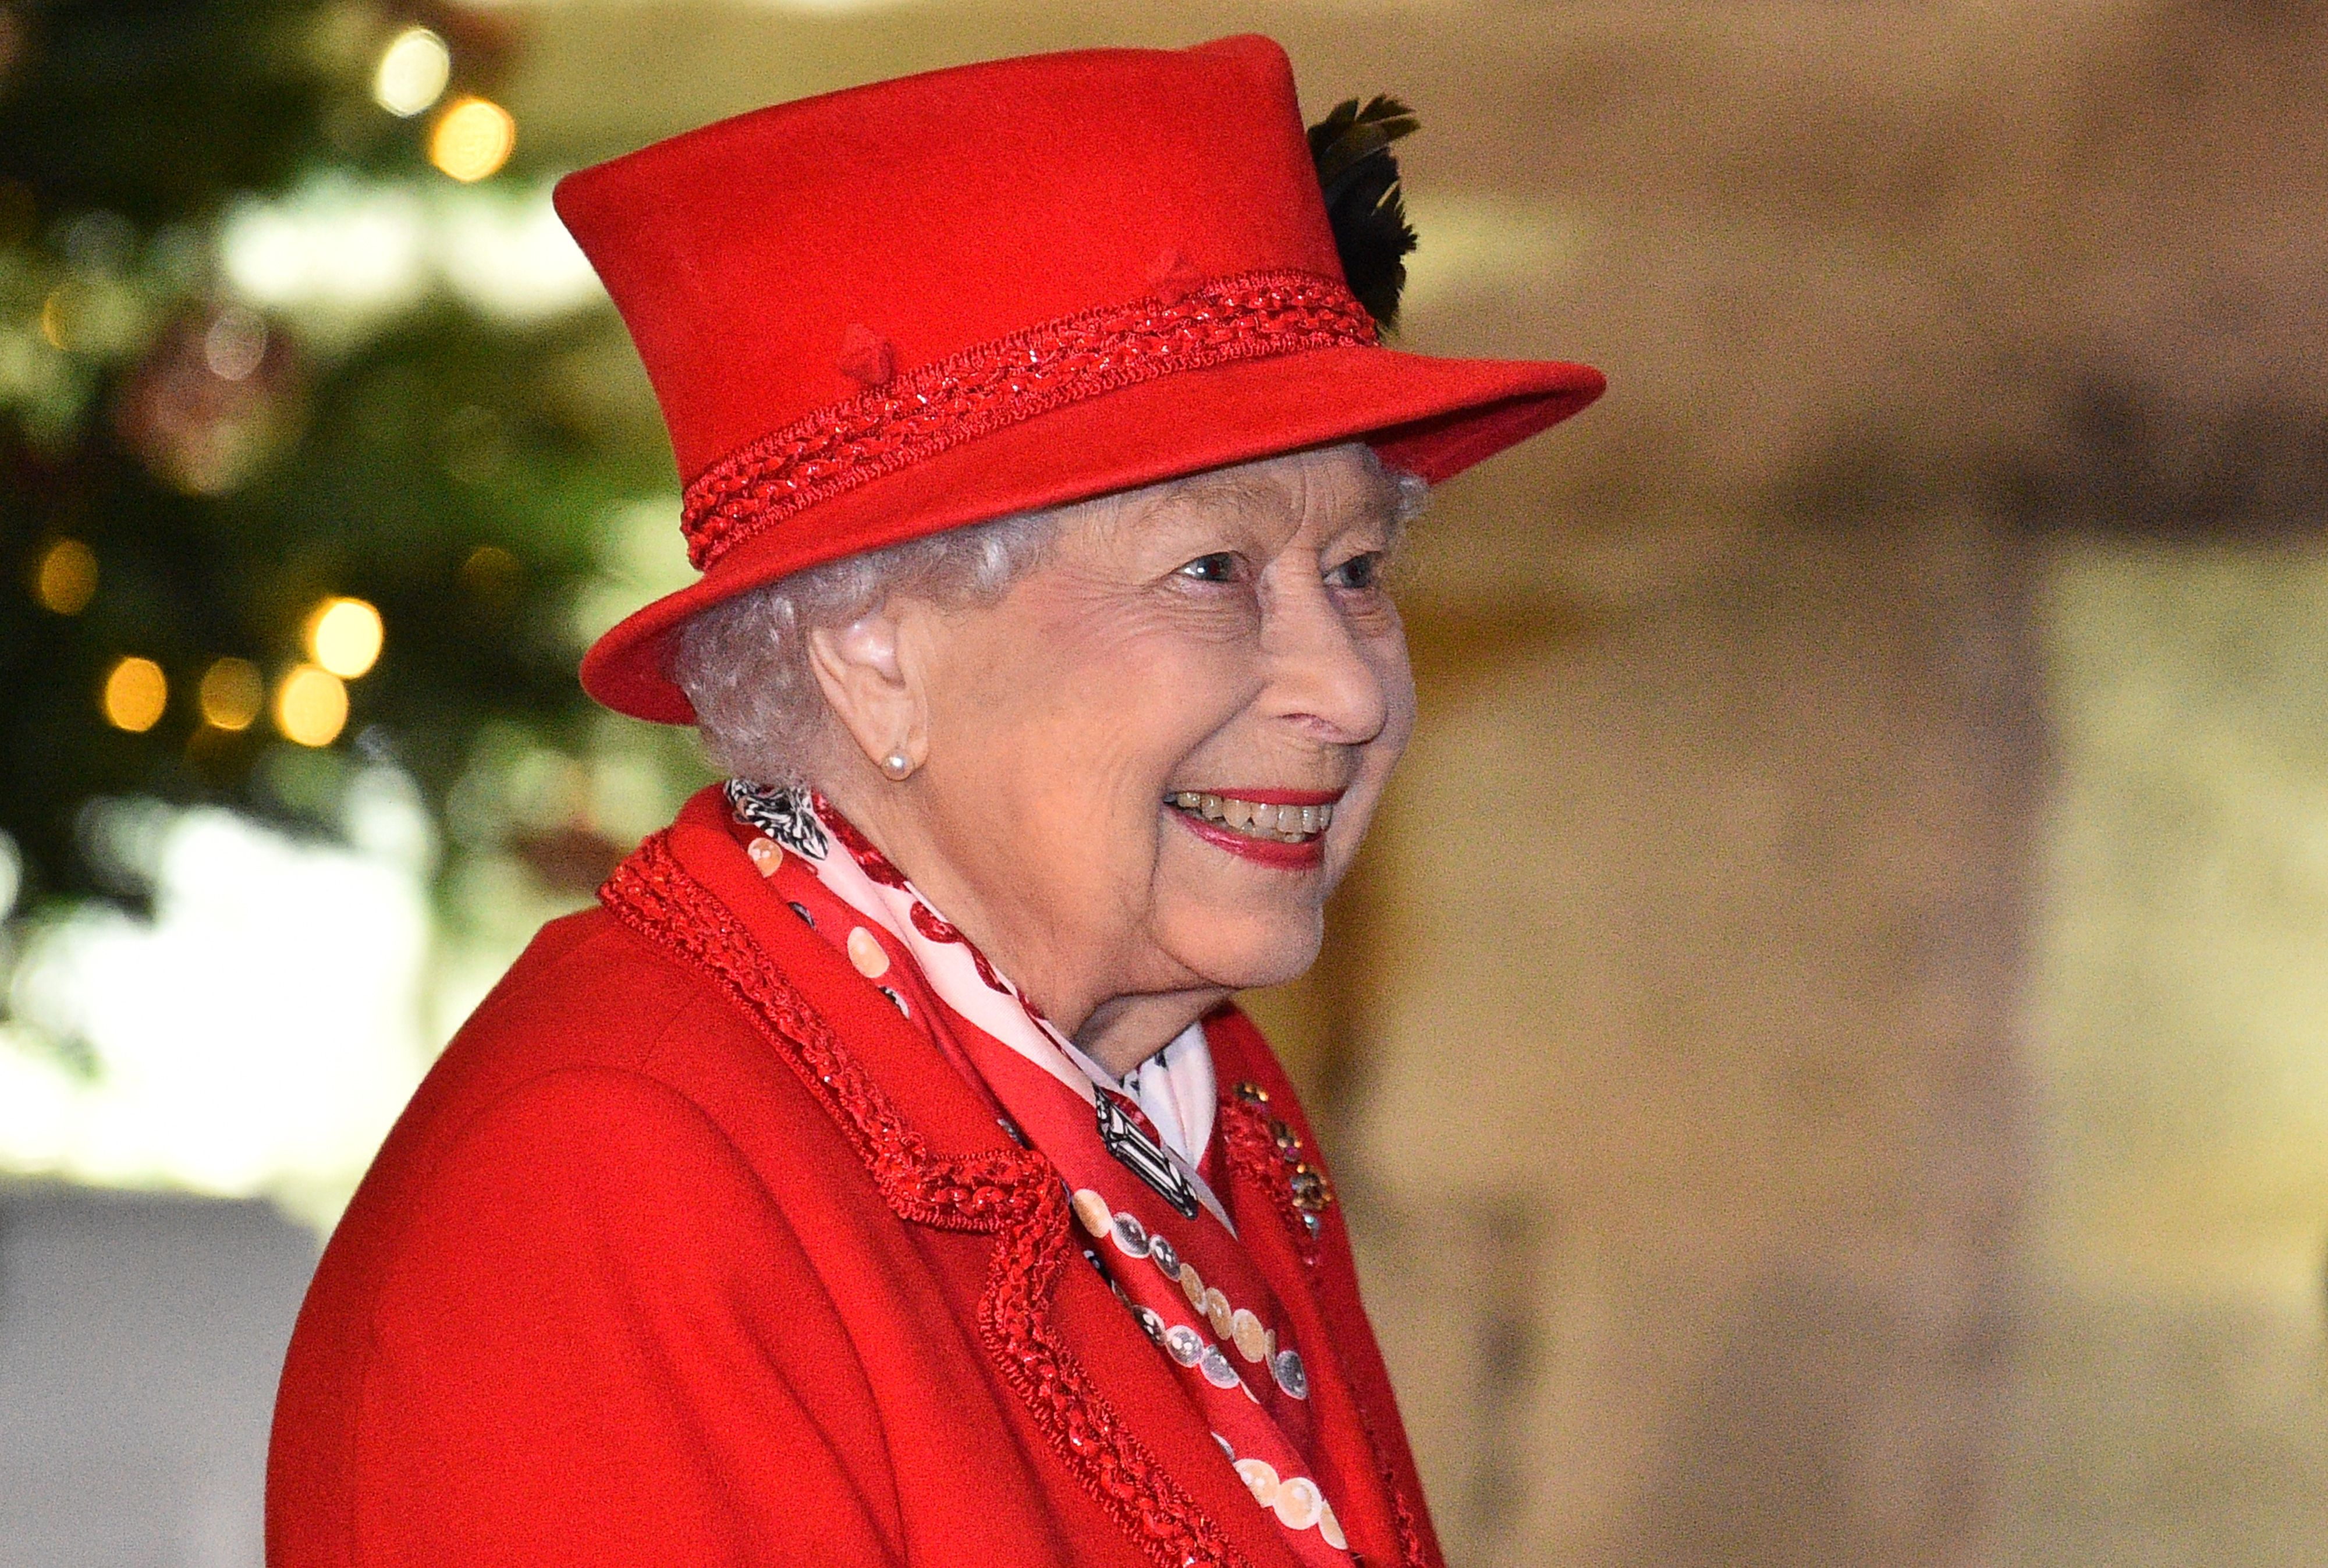 Queen Elizabeth II thanks local volunteers and key workers for the work they are doing during the coronavirus pandemic and over Christmas in the quadrangle of Windsor Castle on December 8, 2020 | Getty Images